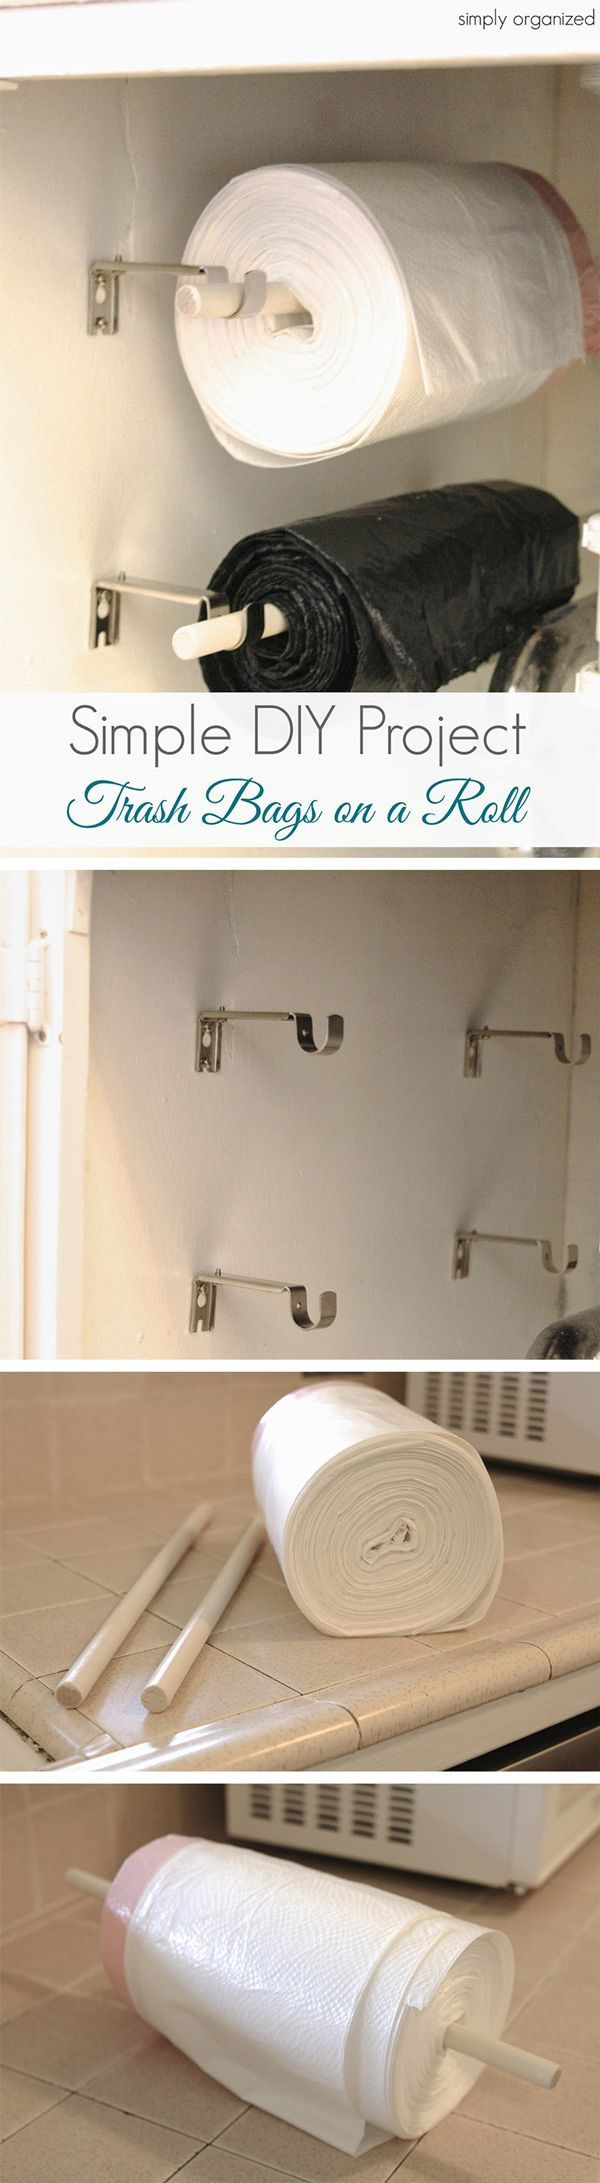 kitchen diy ideas you must love diy ideas kitchens and